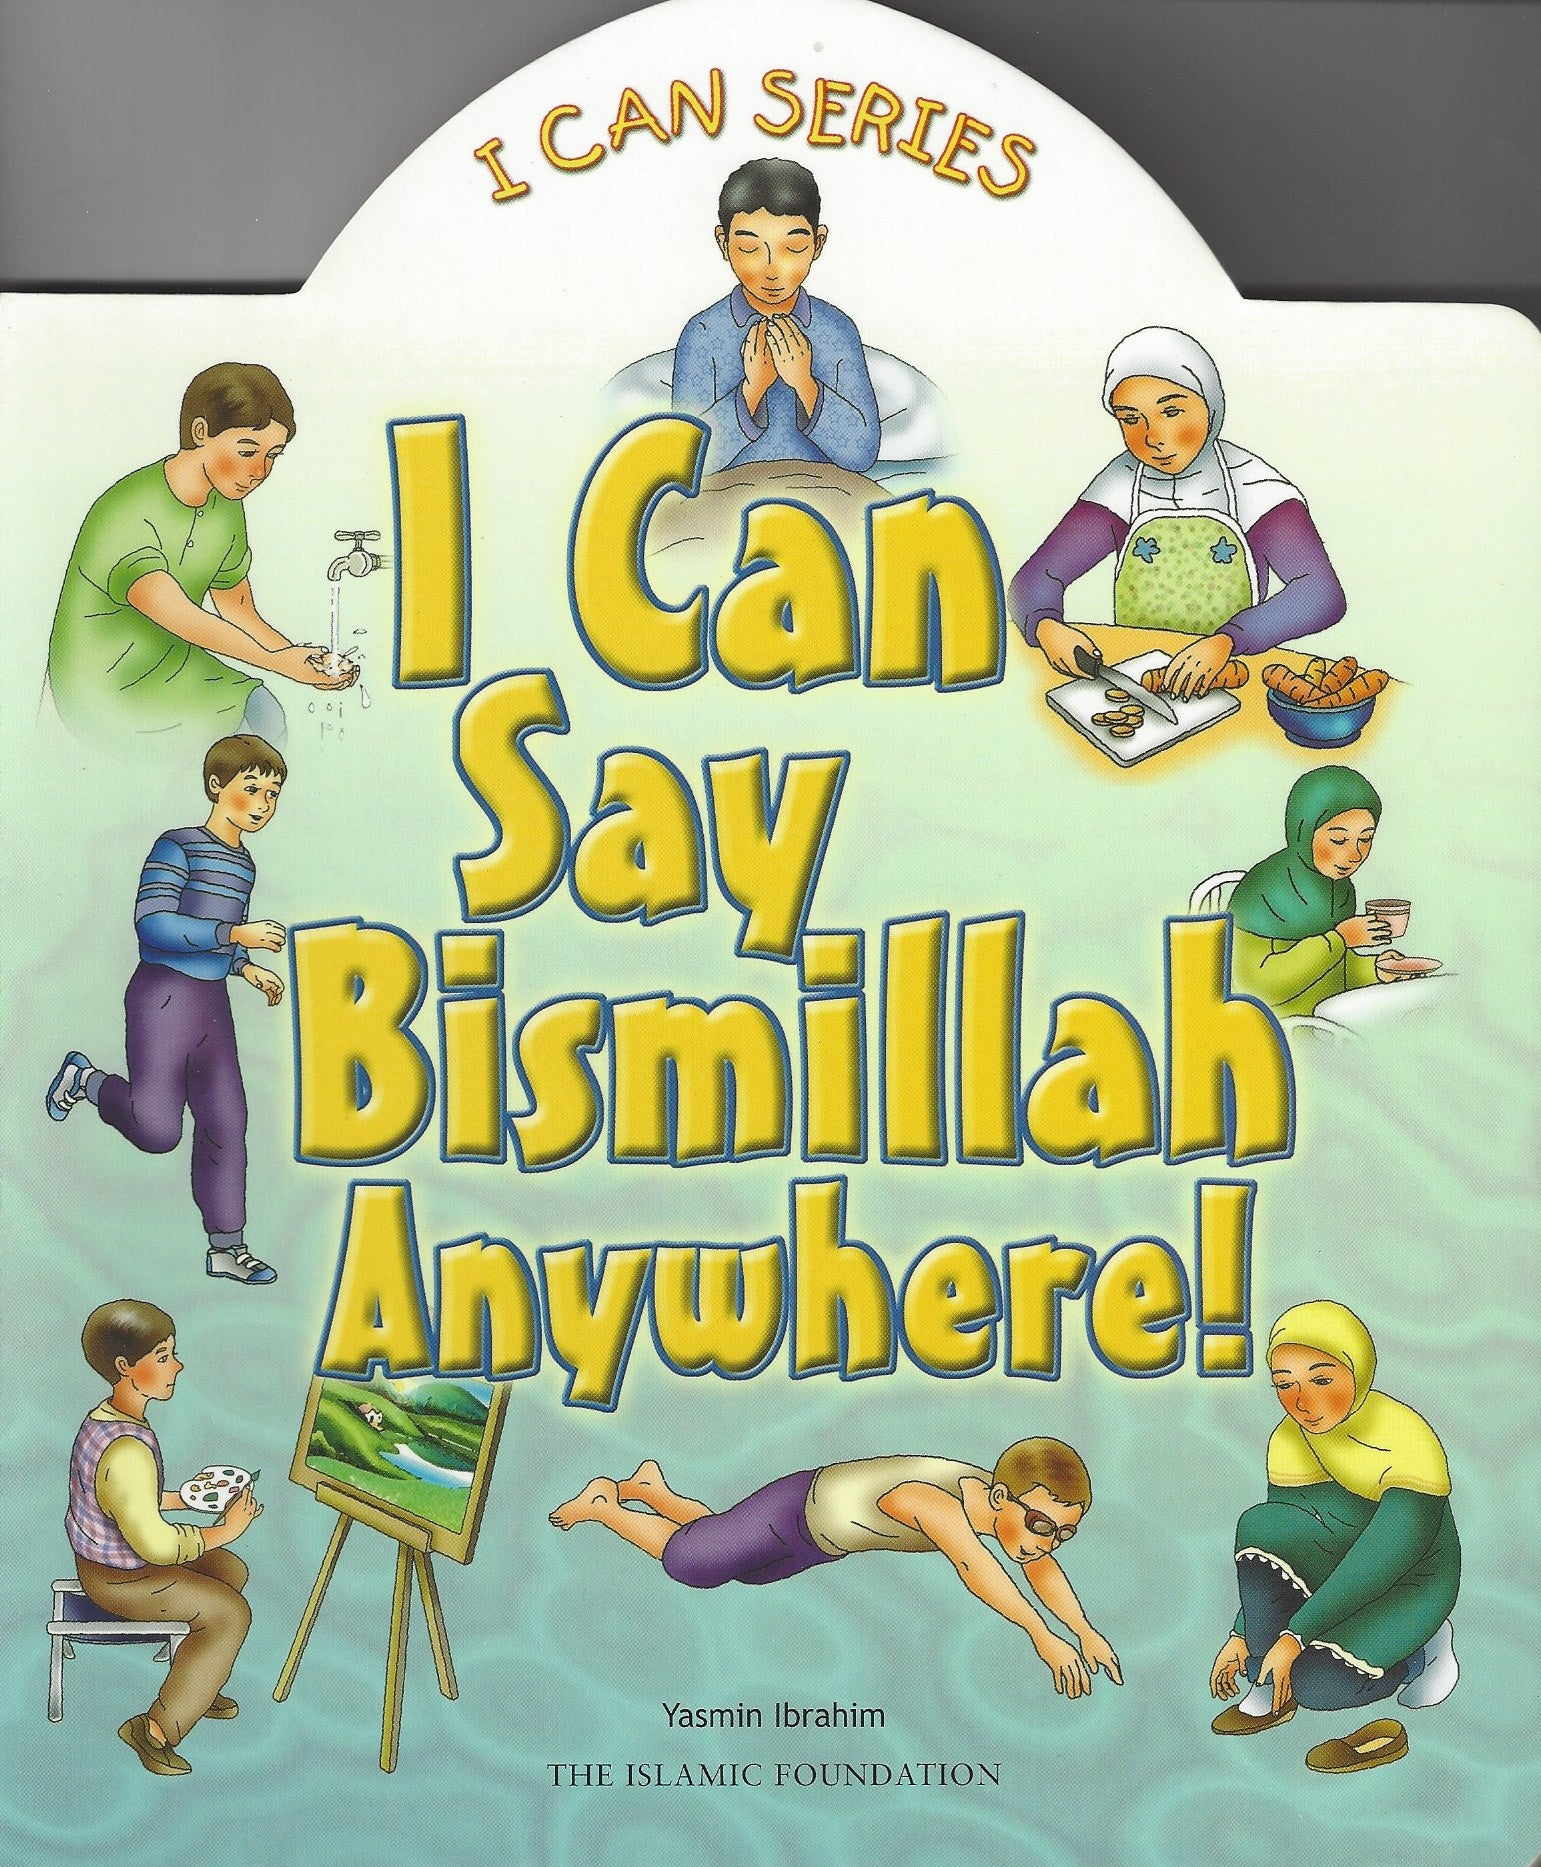 I Can Series: I Can Say Bismillah Anywhere! , Book - Daybreak International Bookstore, Daybreak Press Global Bookshop